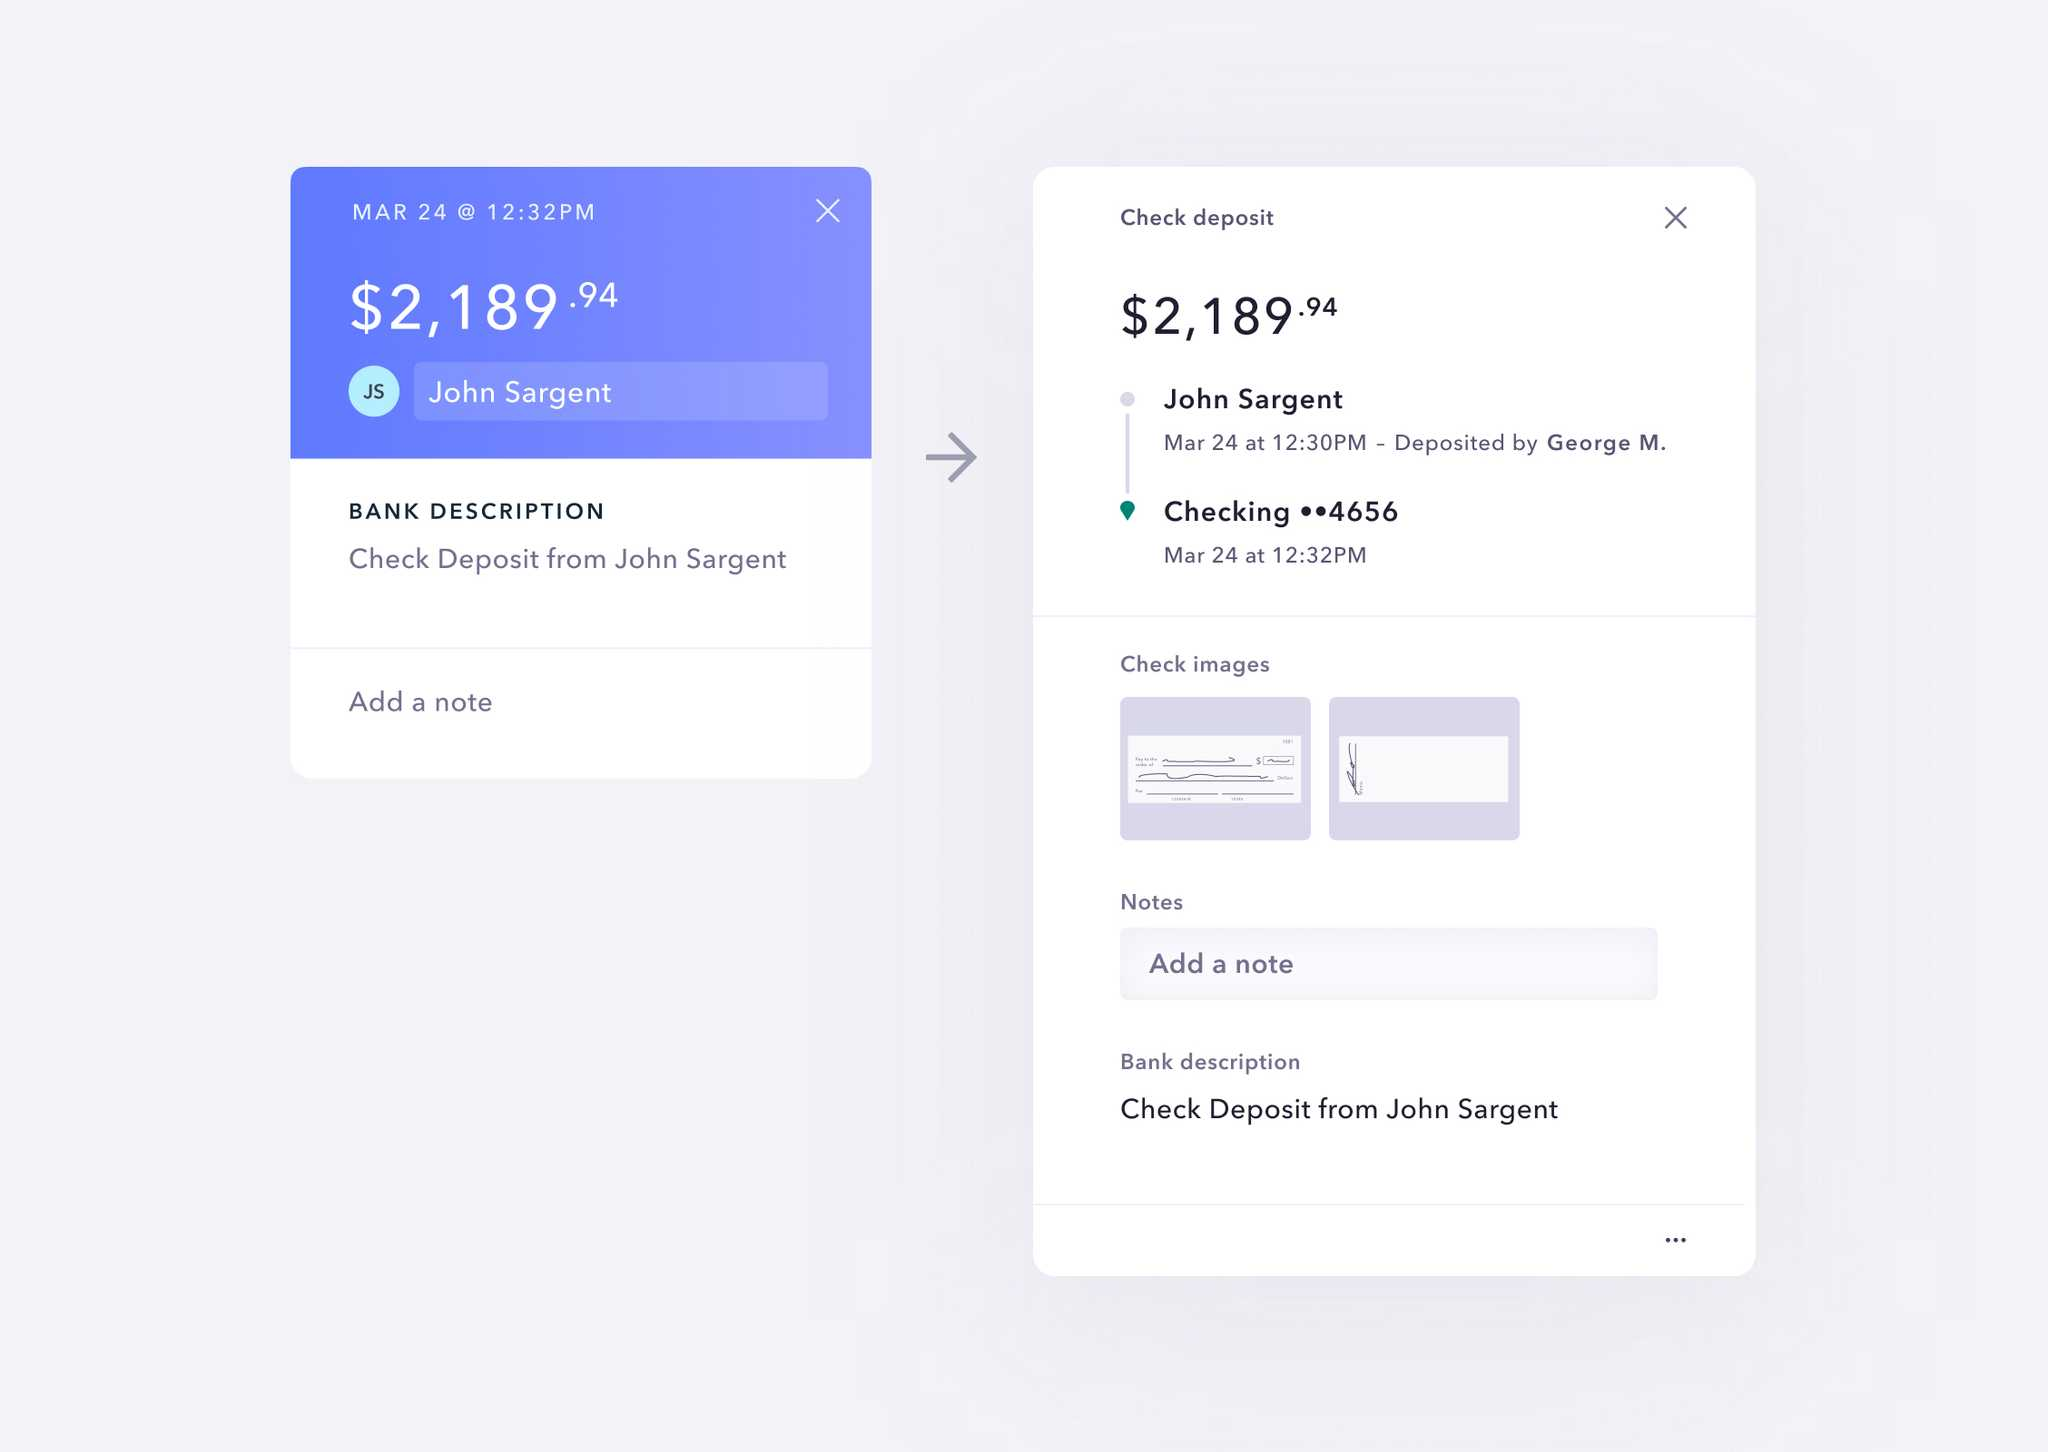 old transactions view compared with new transactions view